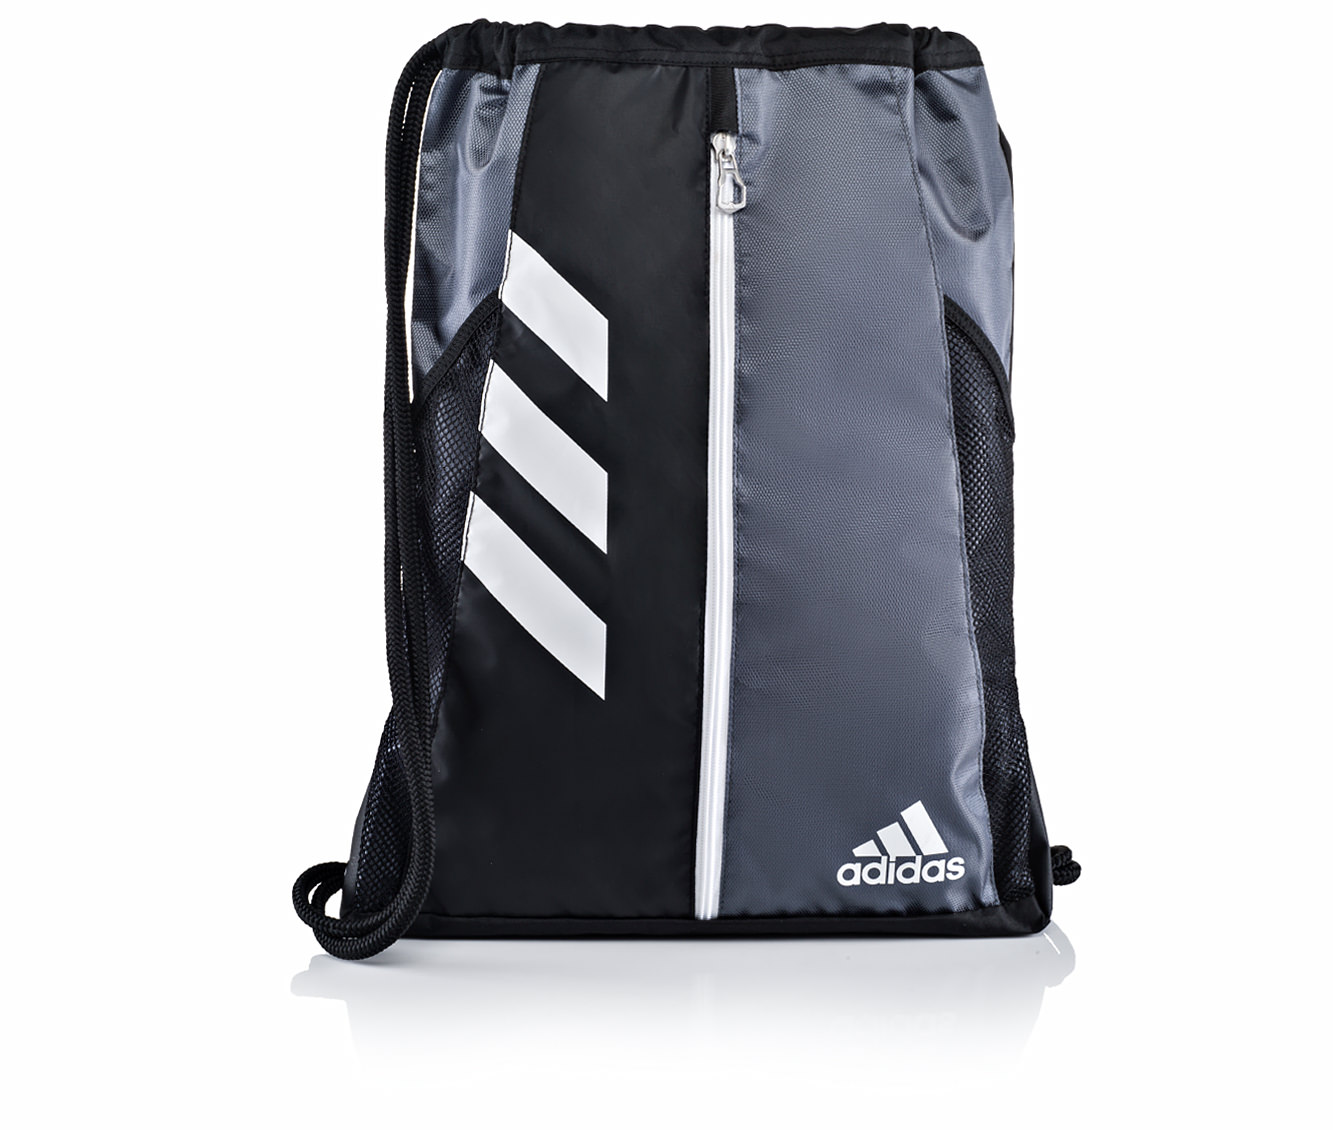 Adidas Team Issue Sackpack (Black - Size UNSZ) 1622049